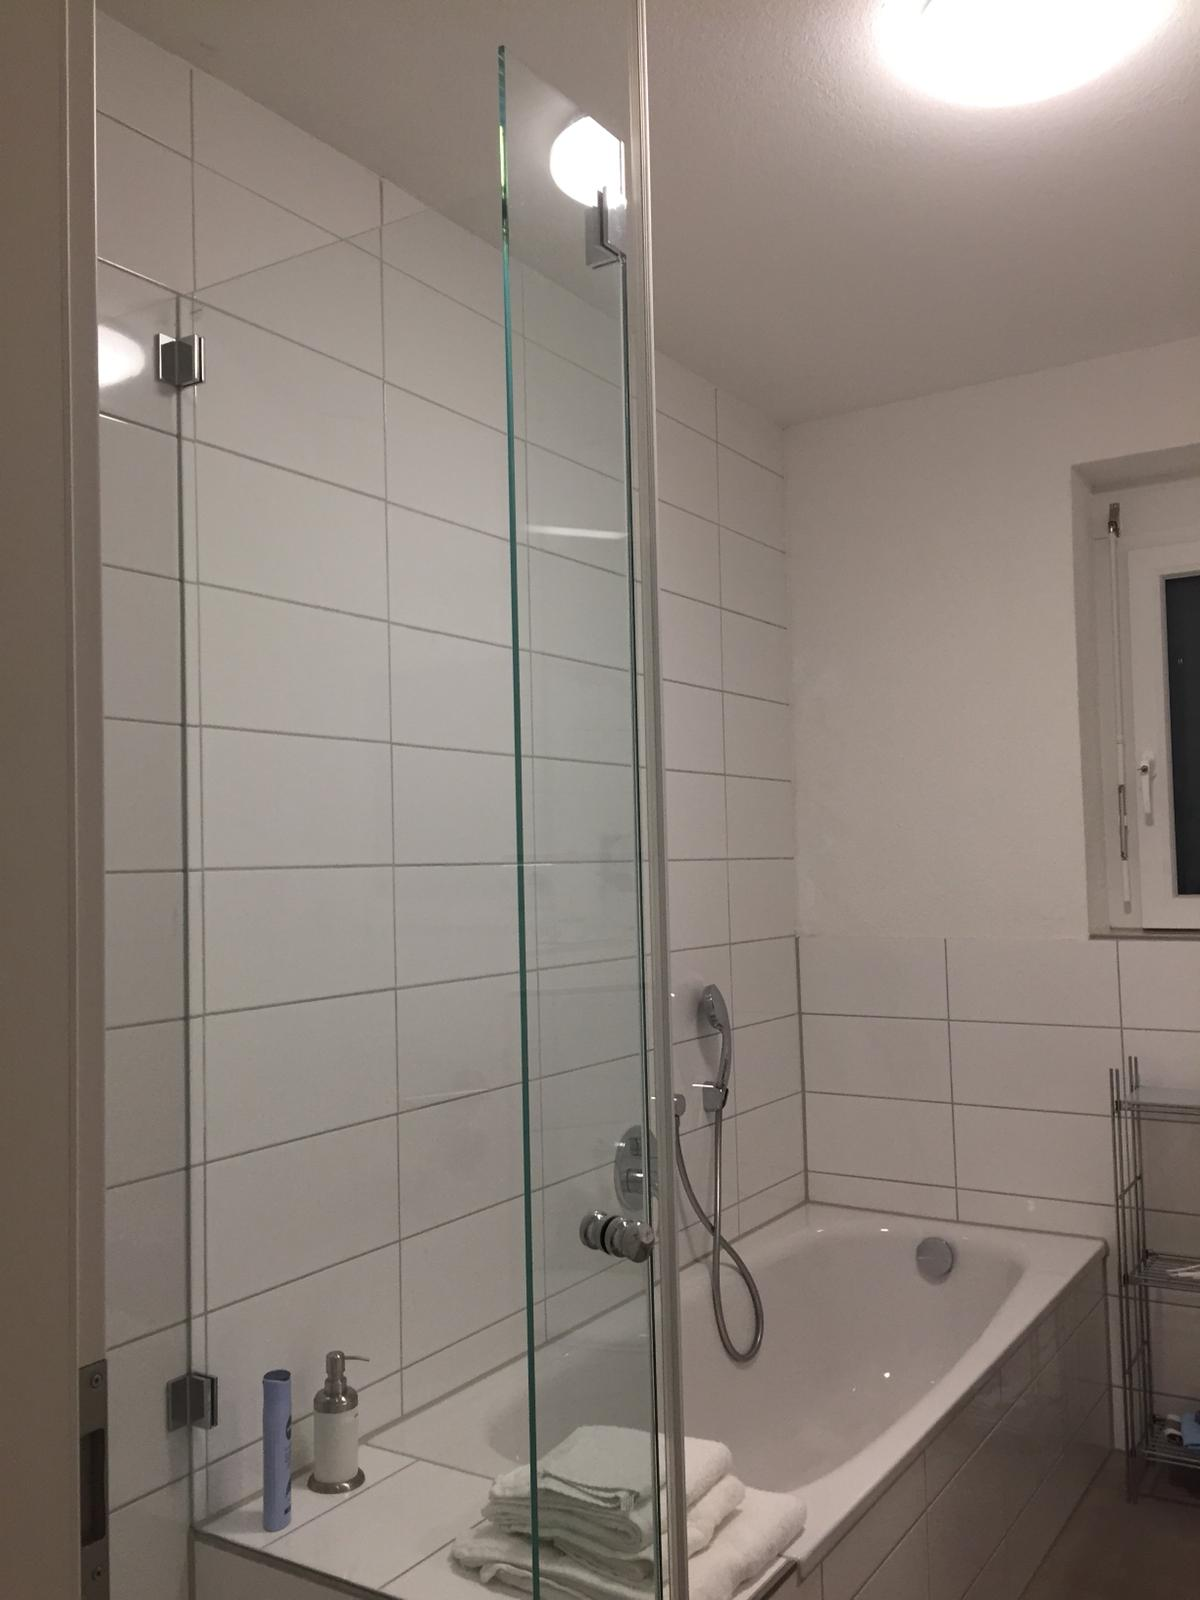 The bathroom with toilet, shower